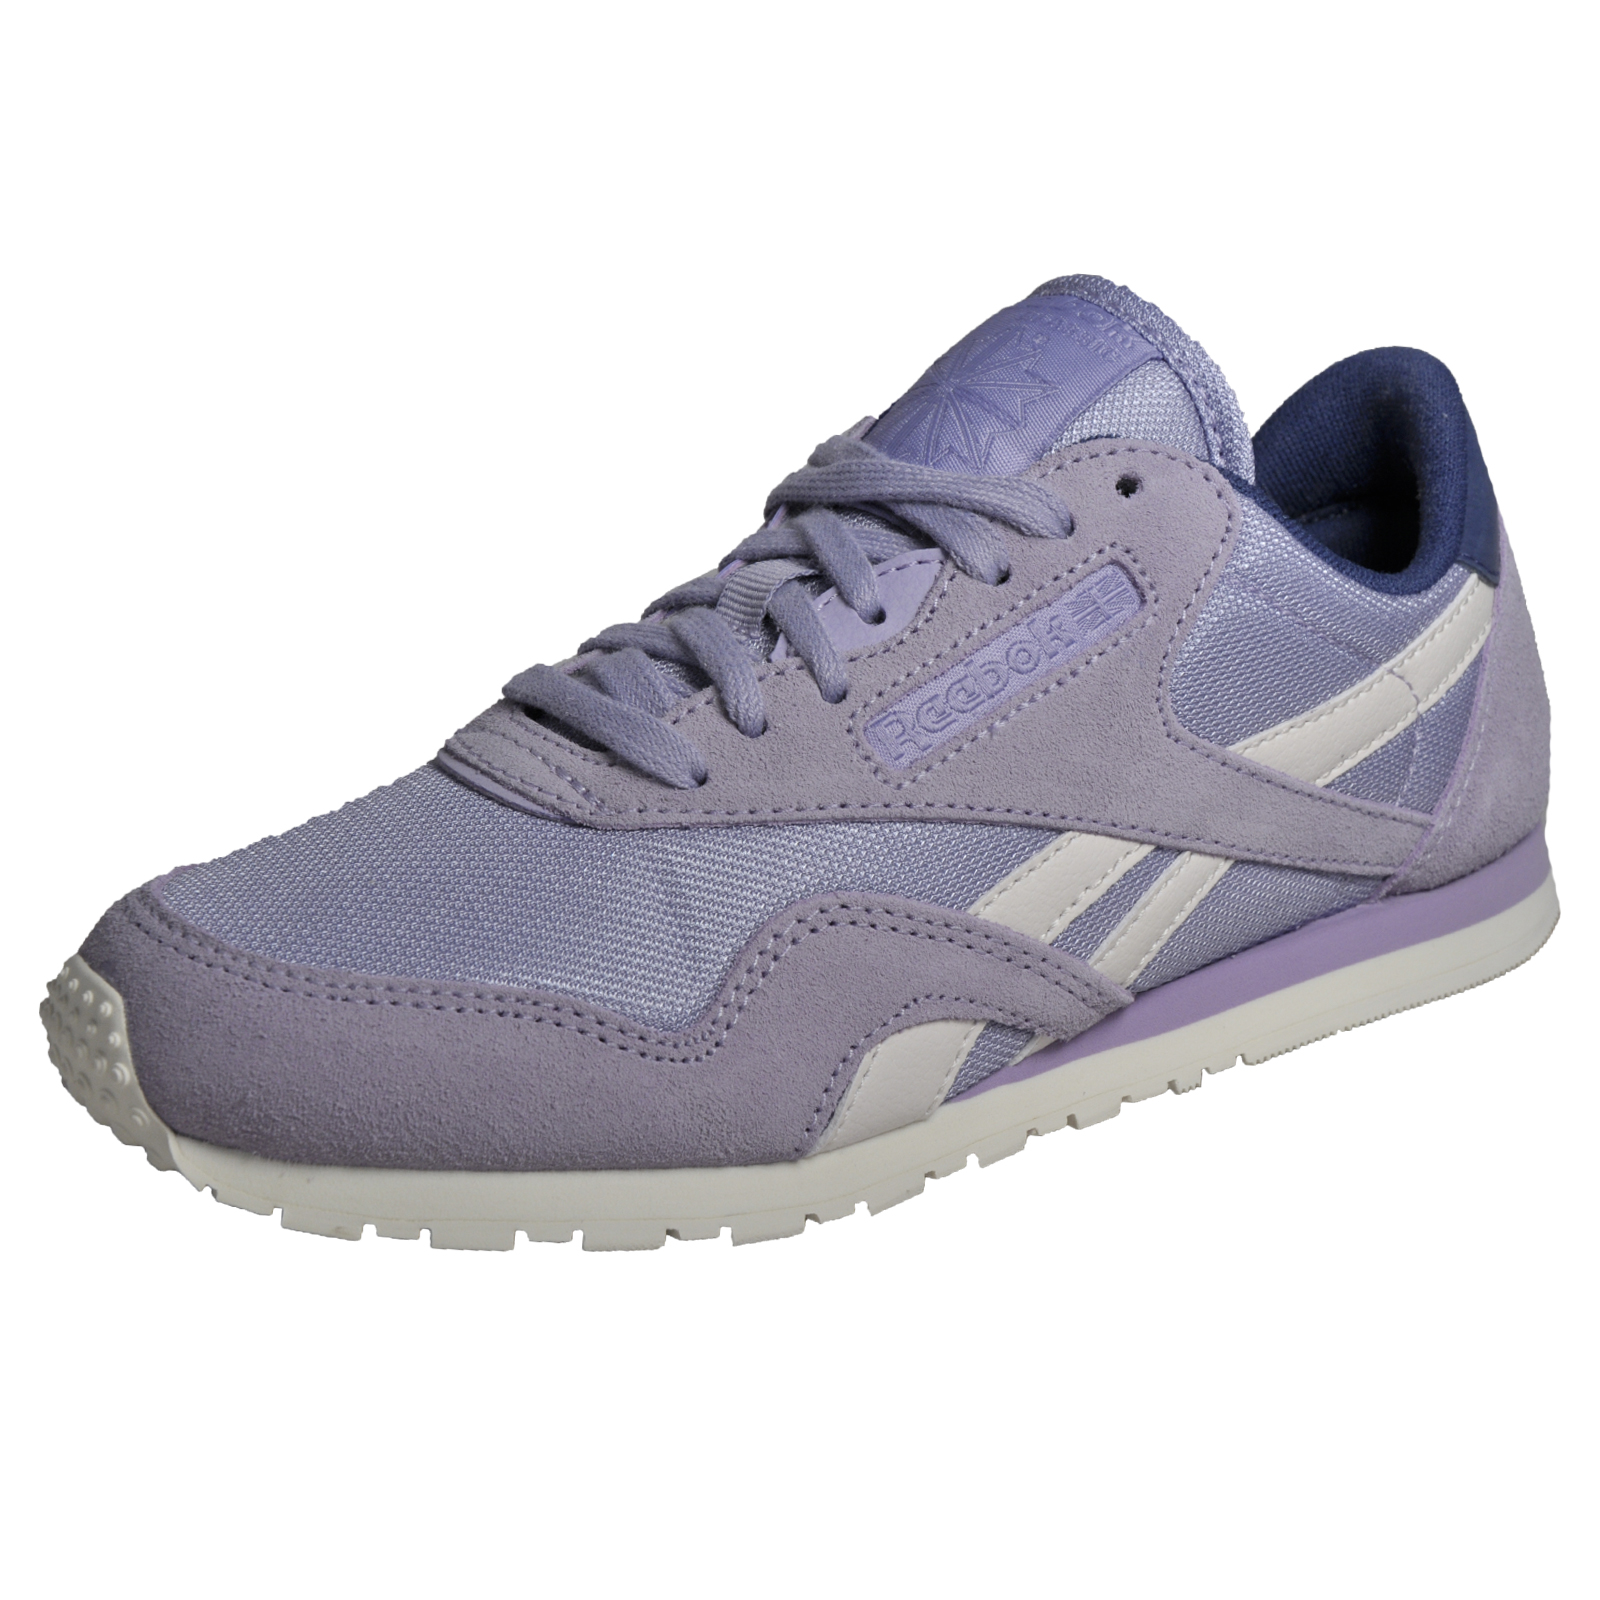 737d8cfbd4b Reebok Classic Nylon Slim Core Women s Casual Retro Trainers Violet Purple